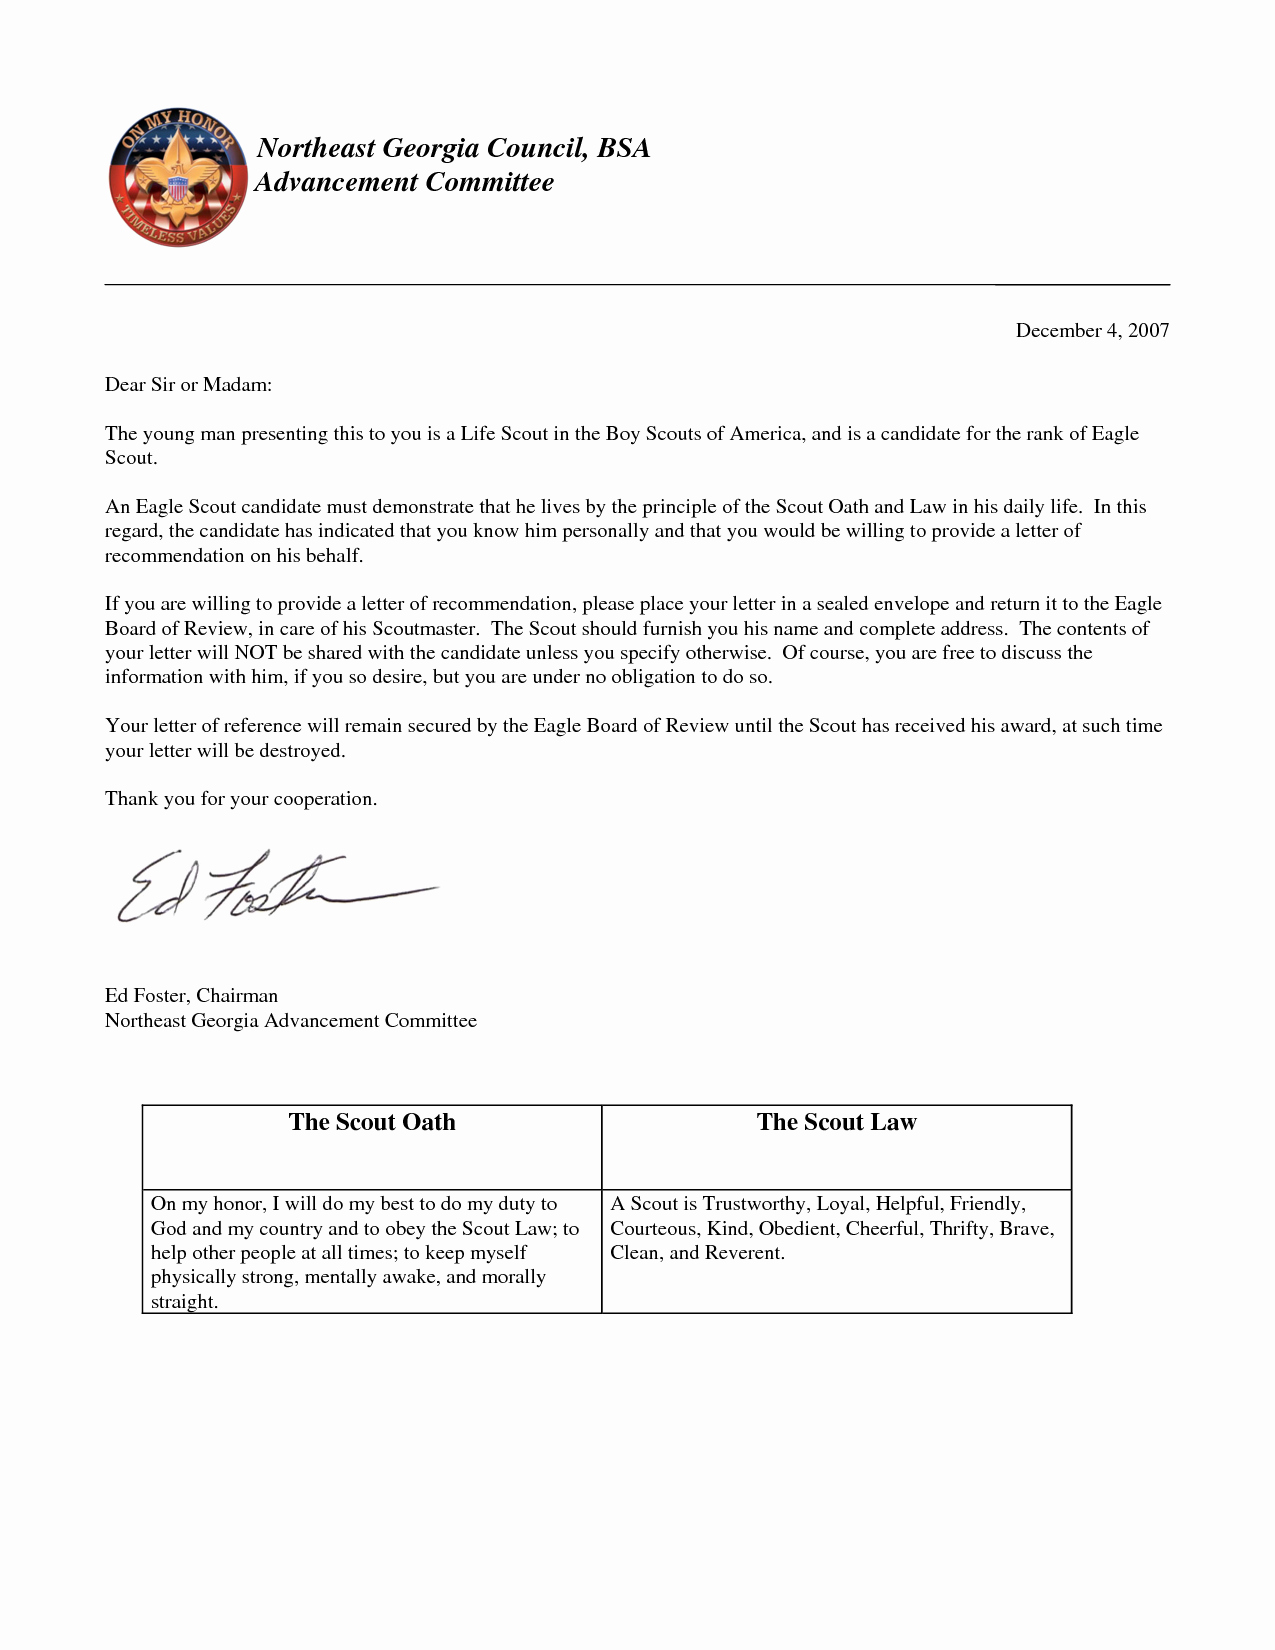 Eagle Scout Reference Letter Template Awesome Best S Of Eagle Scout Re Mendation Reference Letter